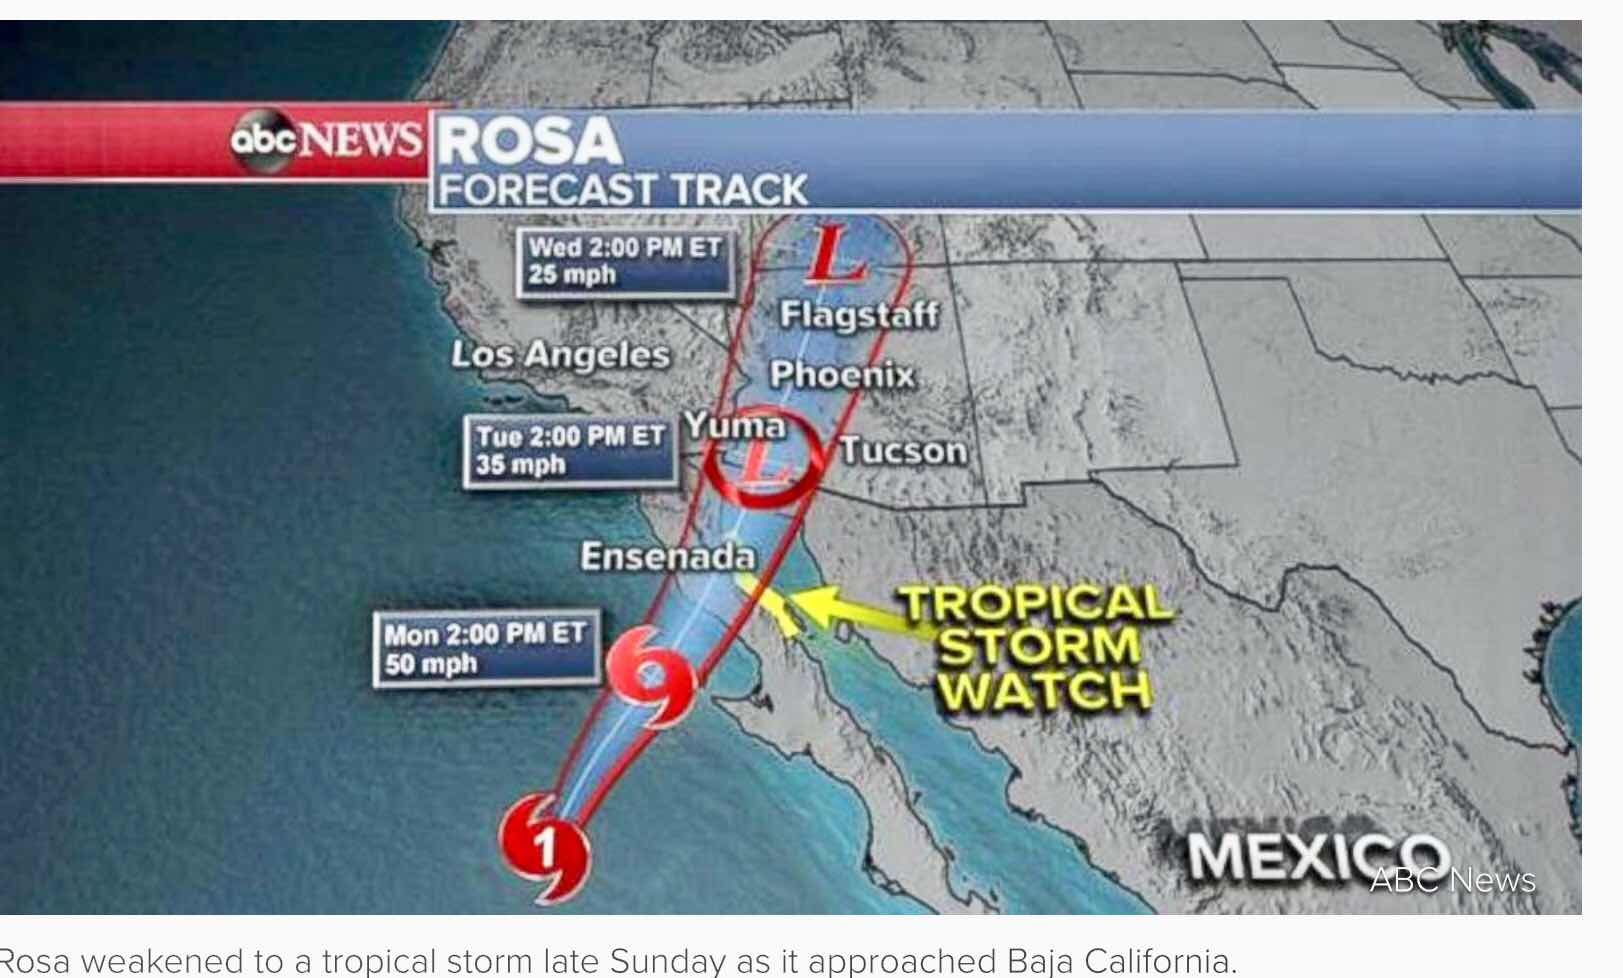 Now we see why our night on Kitt Peak was also cancelled, as impact of Hurricane Rosa continues (Source: ABS News)